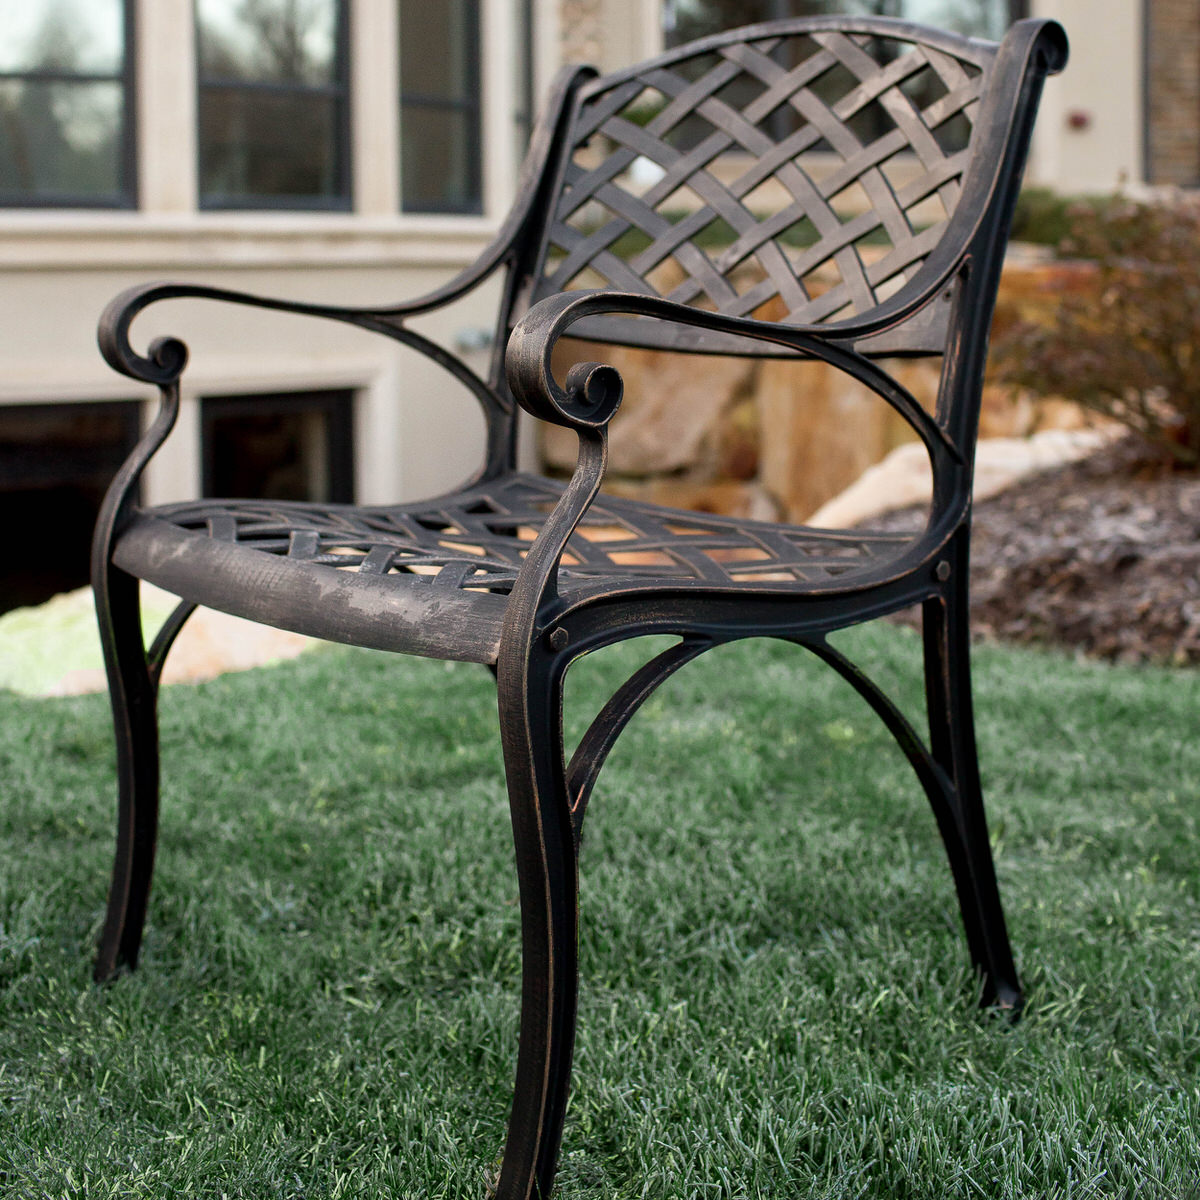 Backyard Chairs Antique Brown Cast Aluminum Patio Chairs Set Of 2 By Walker Edison